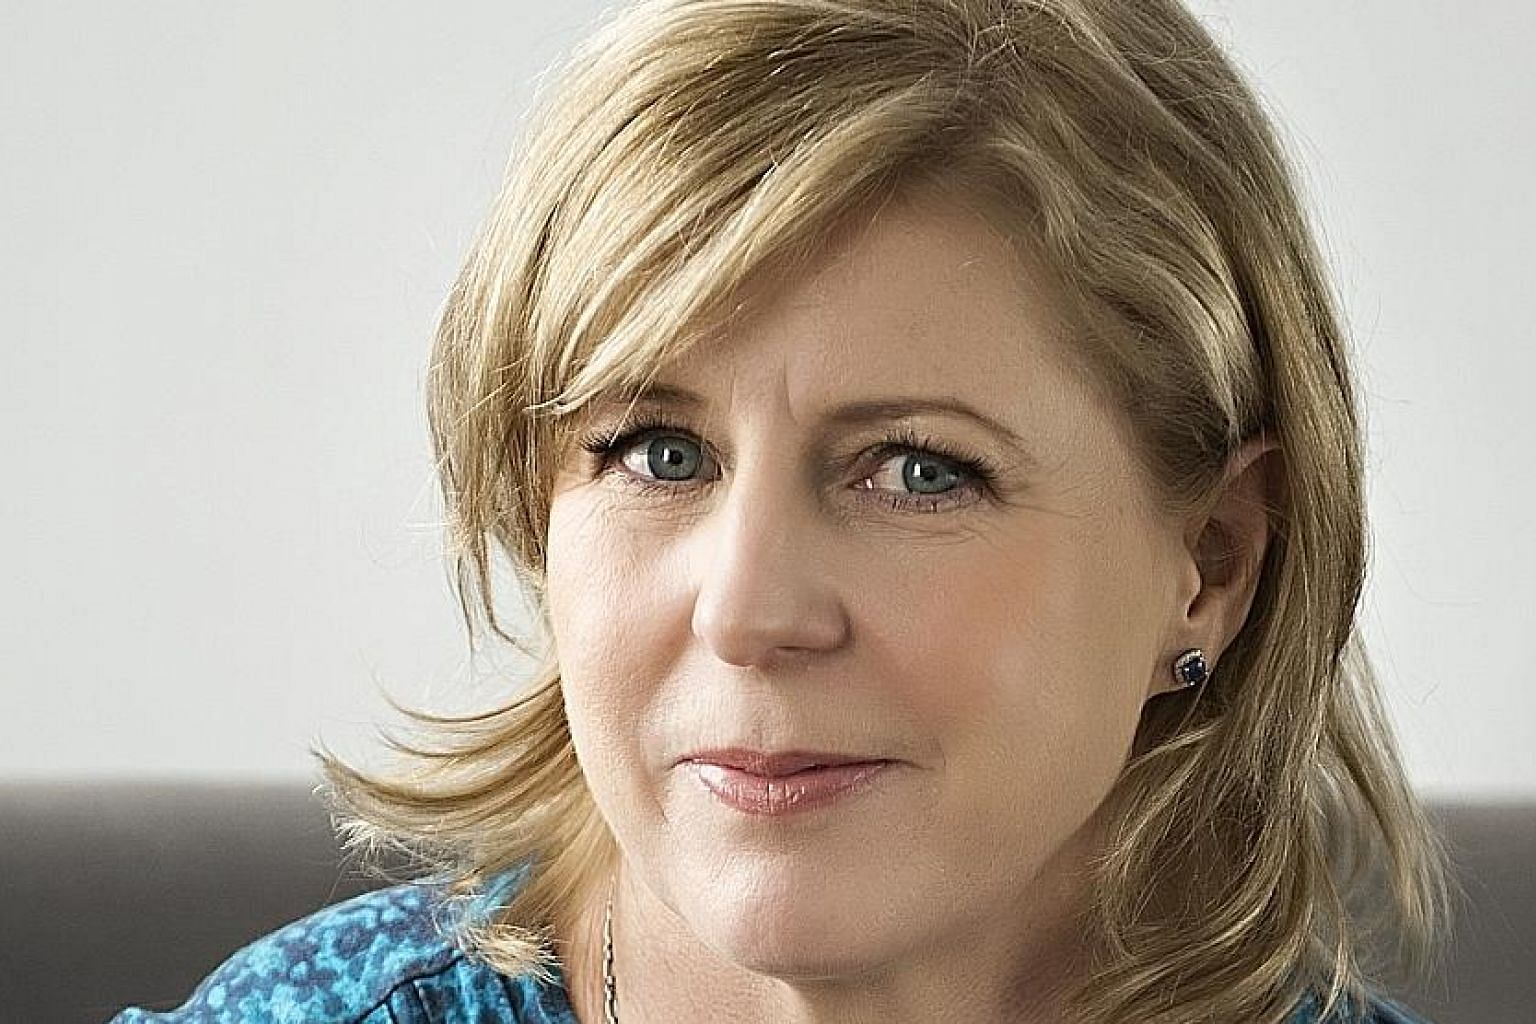 Liane Moriarty's novels are known for bringing a cast of characters together and letting things spin out of control.